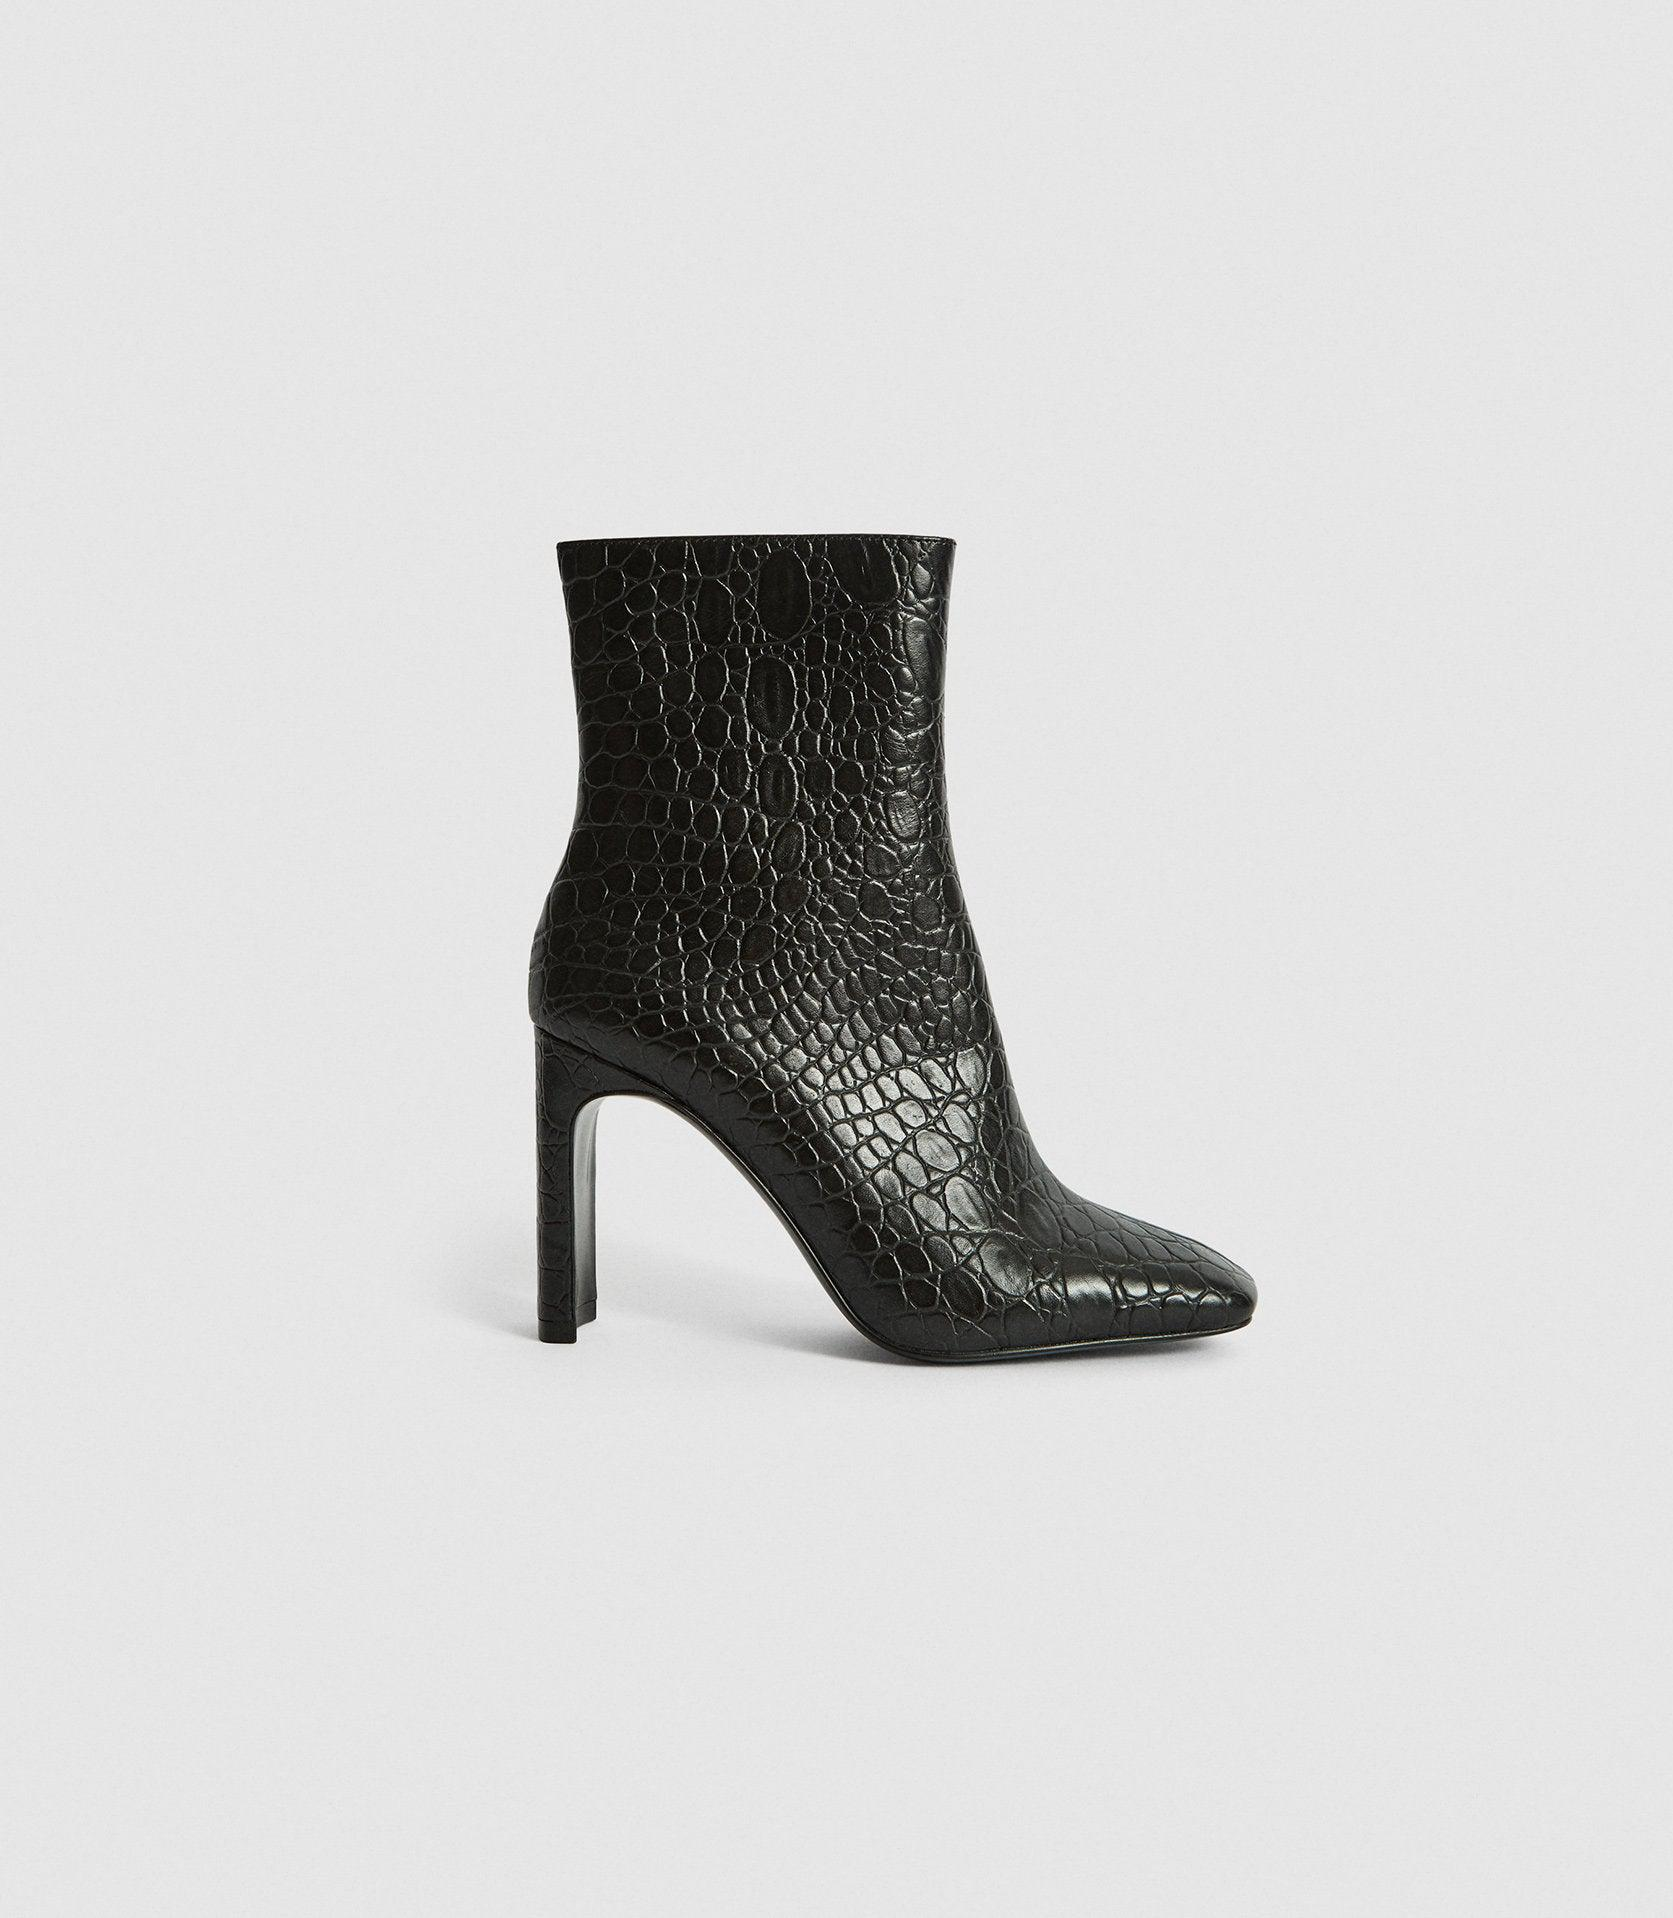 VOGUE - LEATHER CROC EMBOSSED ANKLE BOOTS